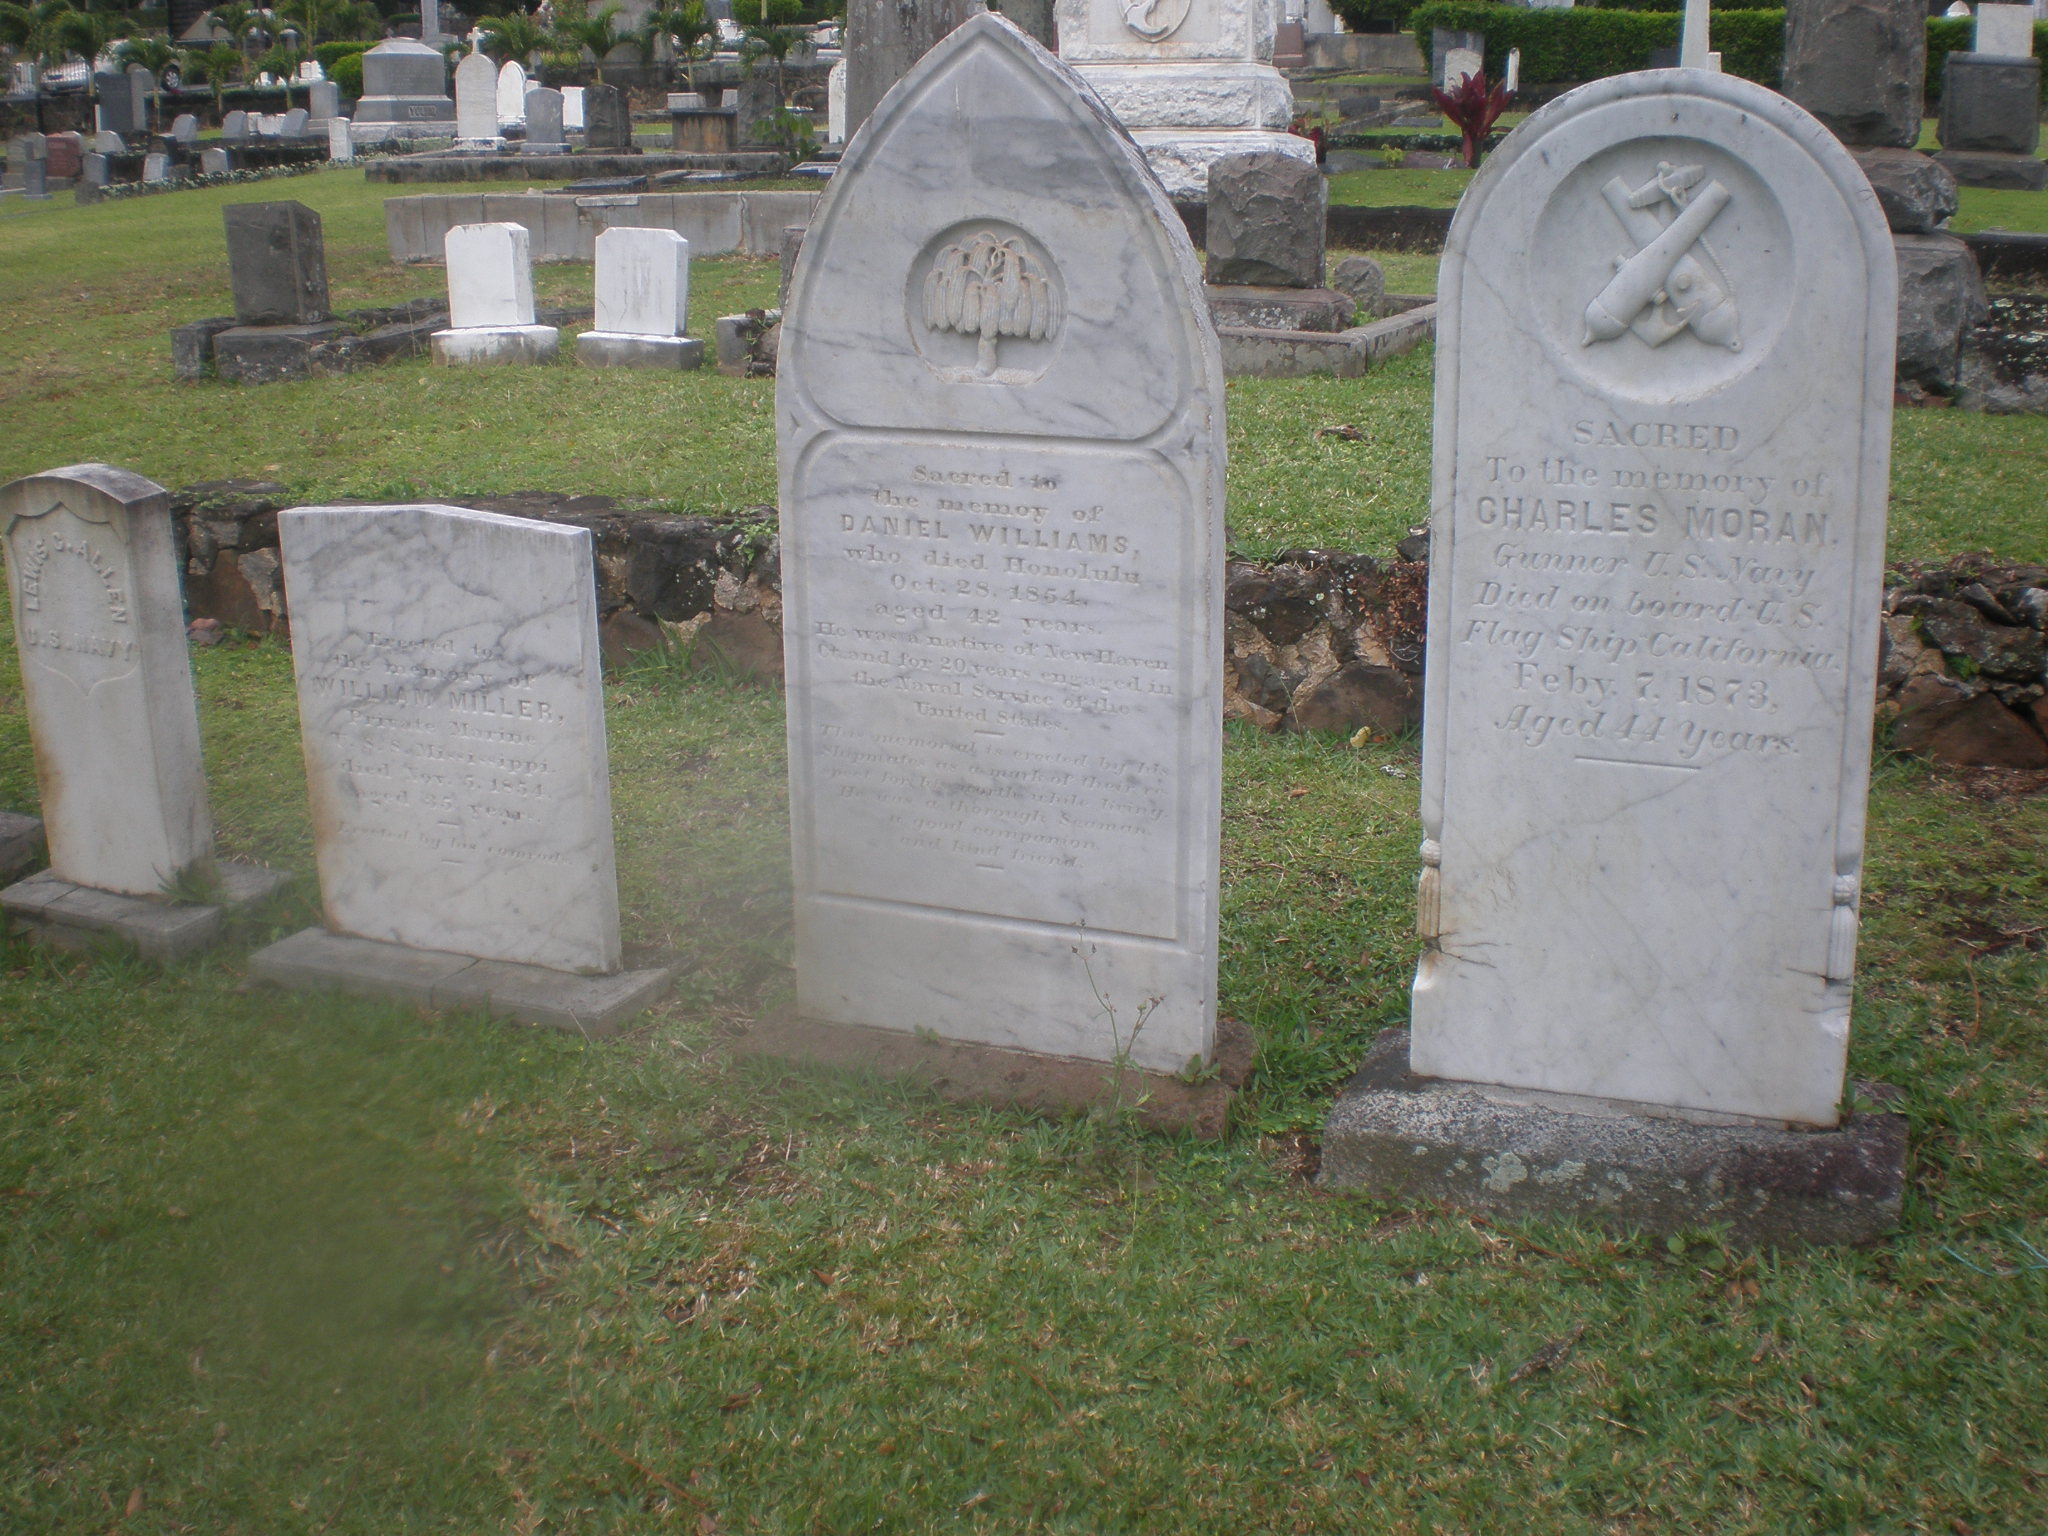 Drawn headstone death Memorials to footstones dead evolved